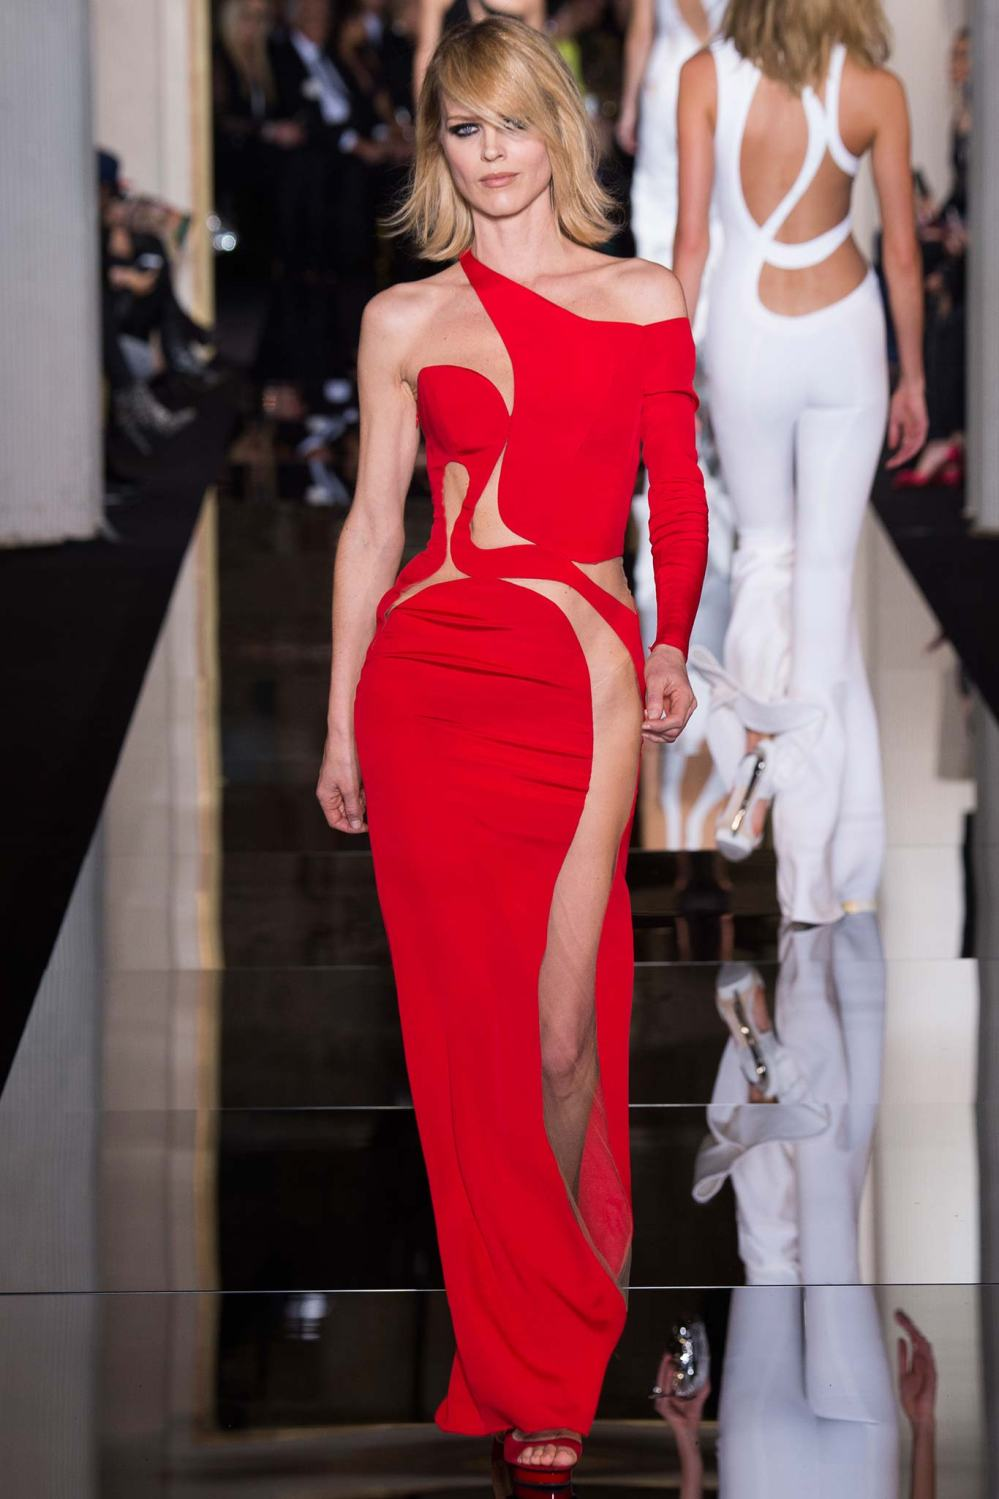 Atelier Versace, Spring/Summer 2015 Look 45 Model : Eva Herzigova Photo: Kim Weston Arnold/Indigitalimages.com